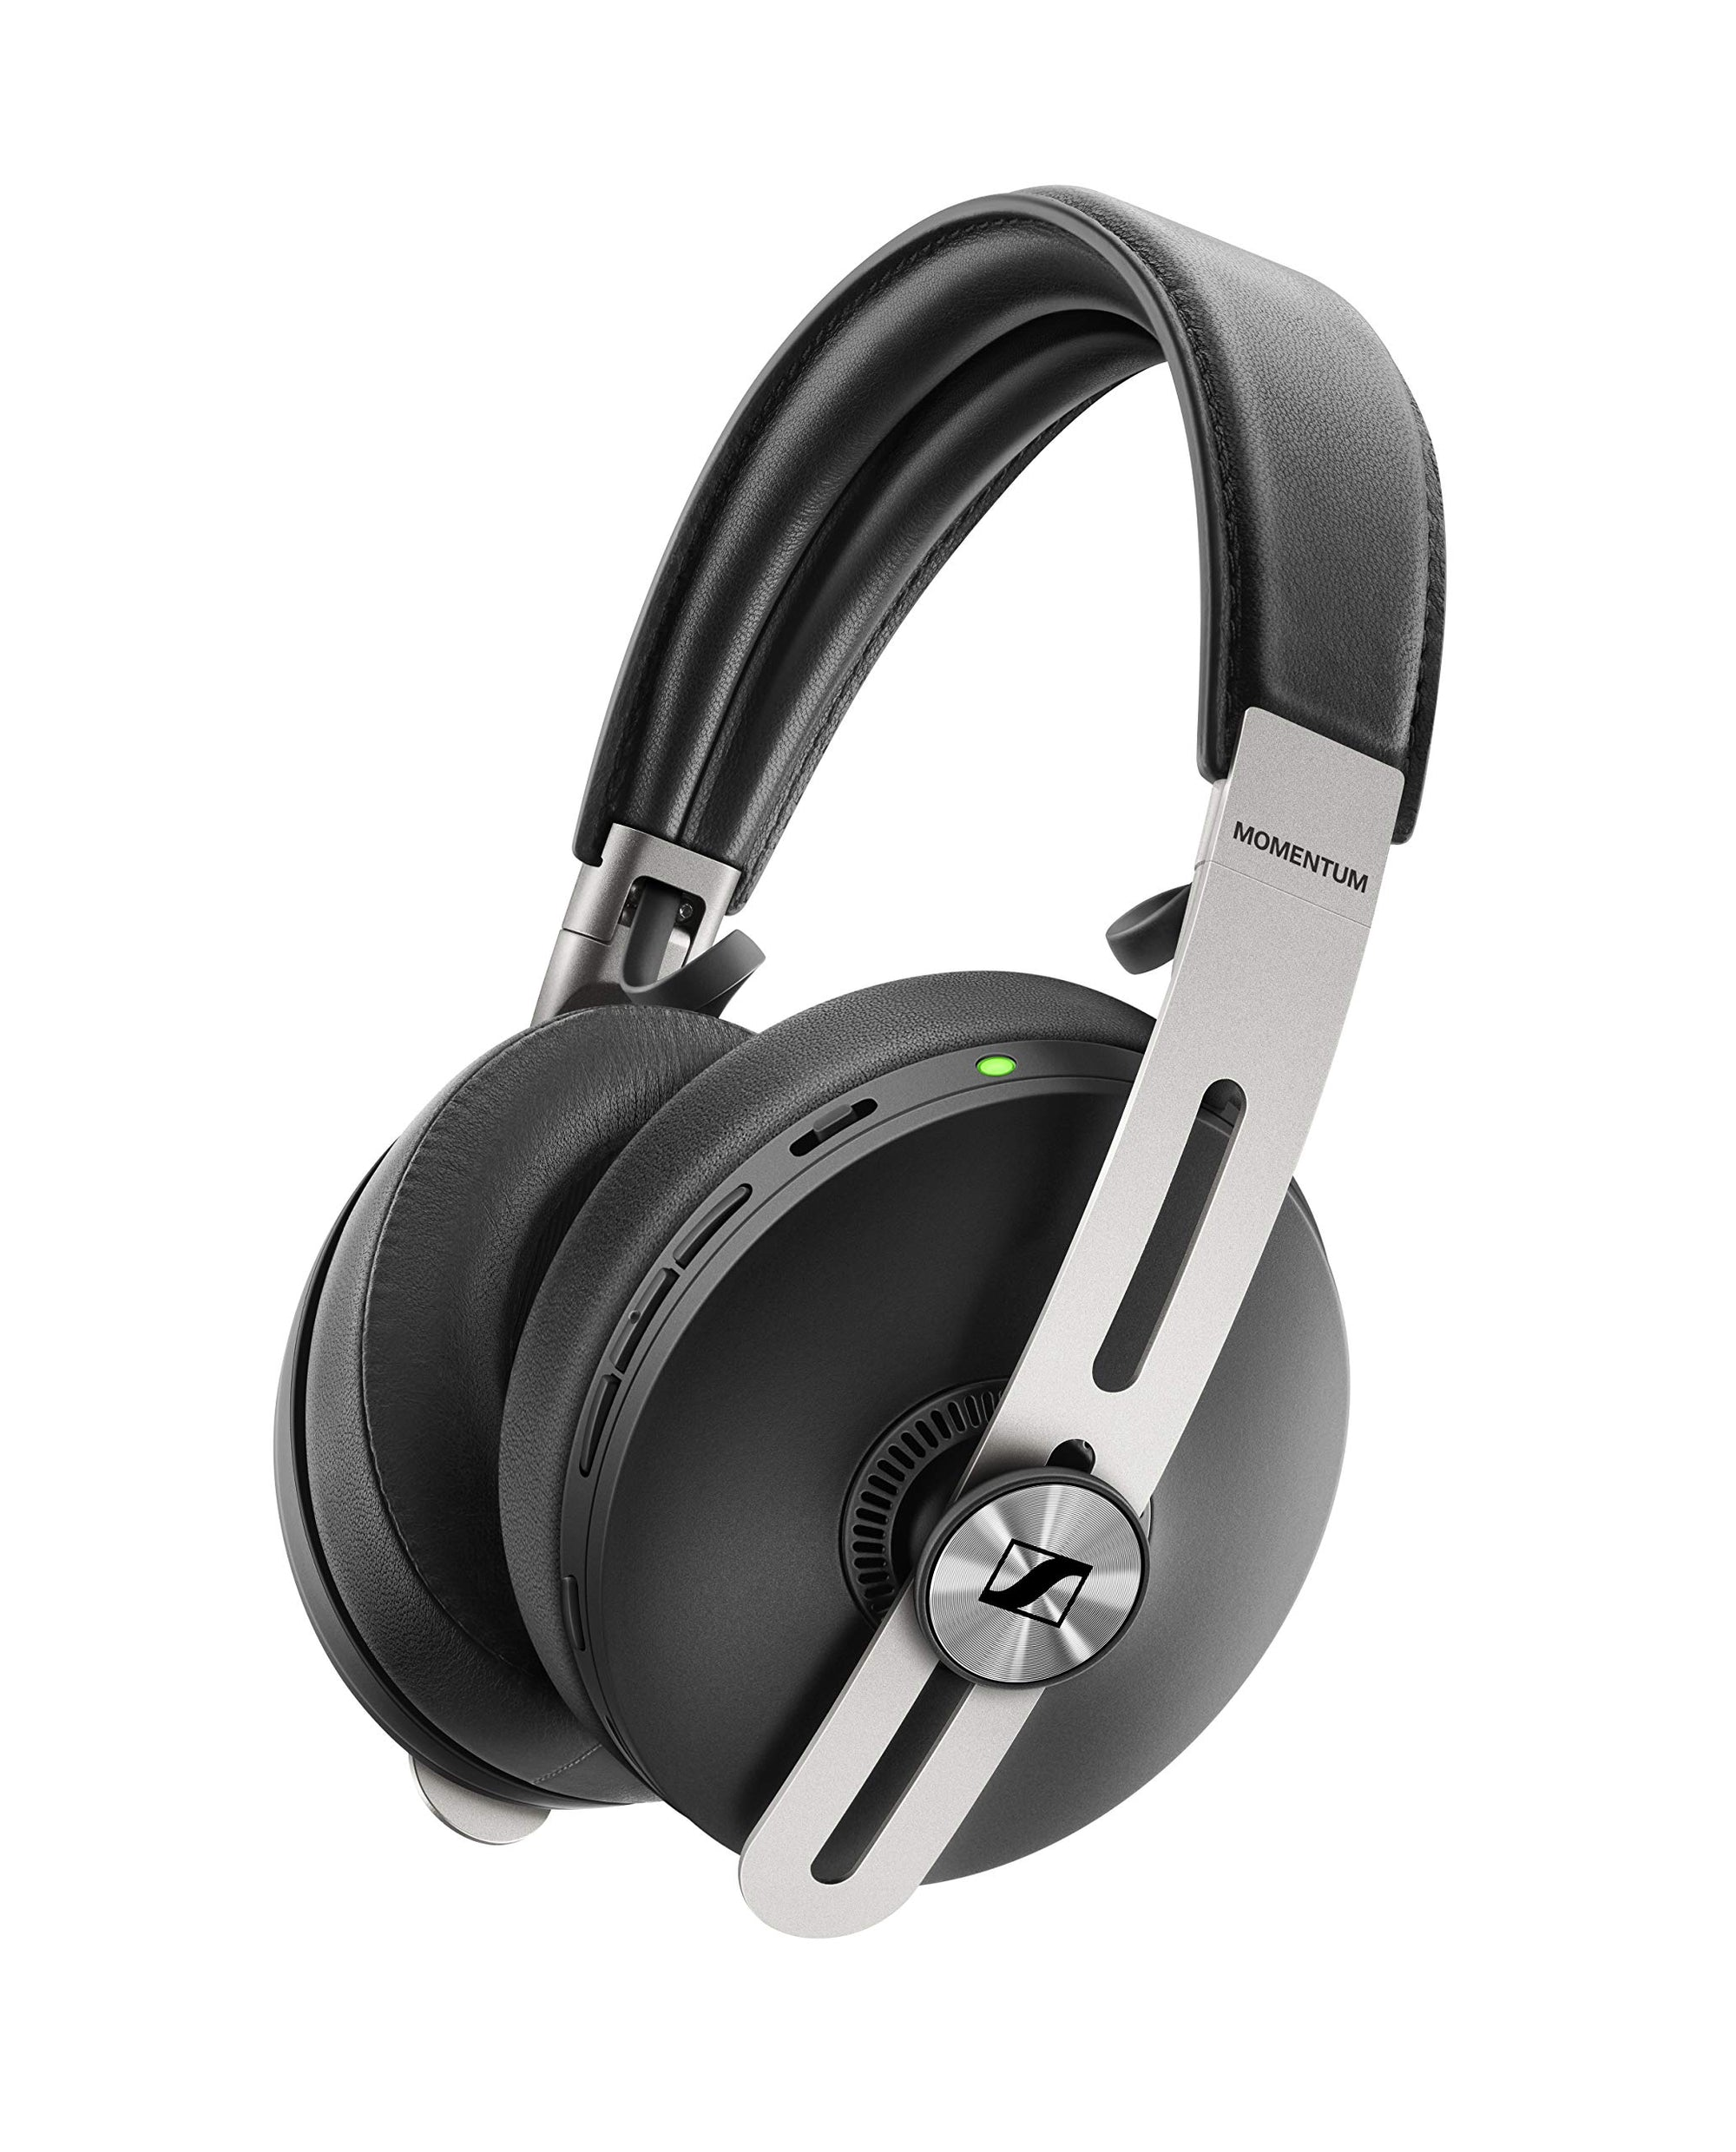 Momentum 3 Wireless Noise Cancelling Headphones - Current Trend Sales